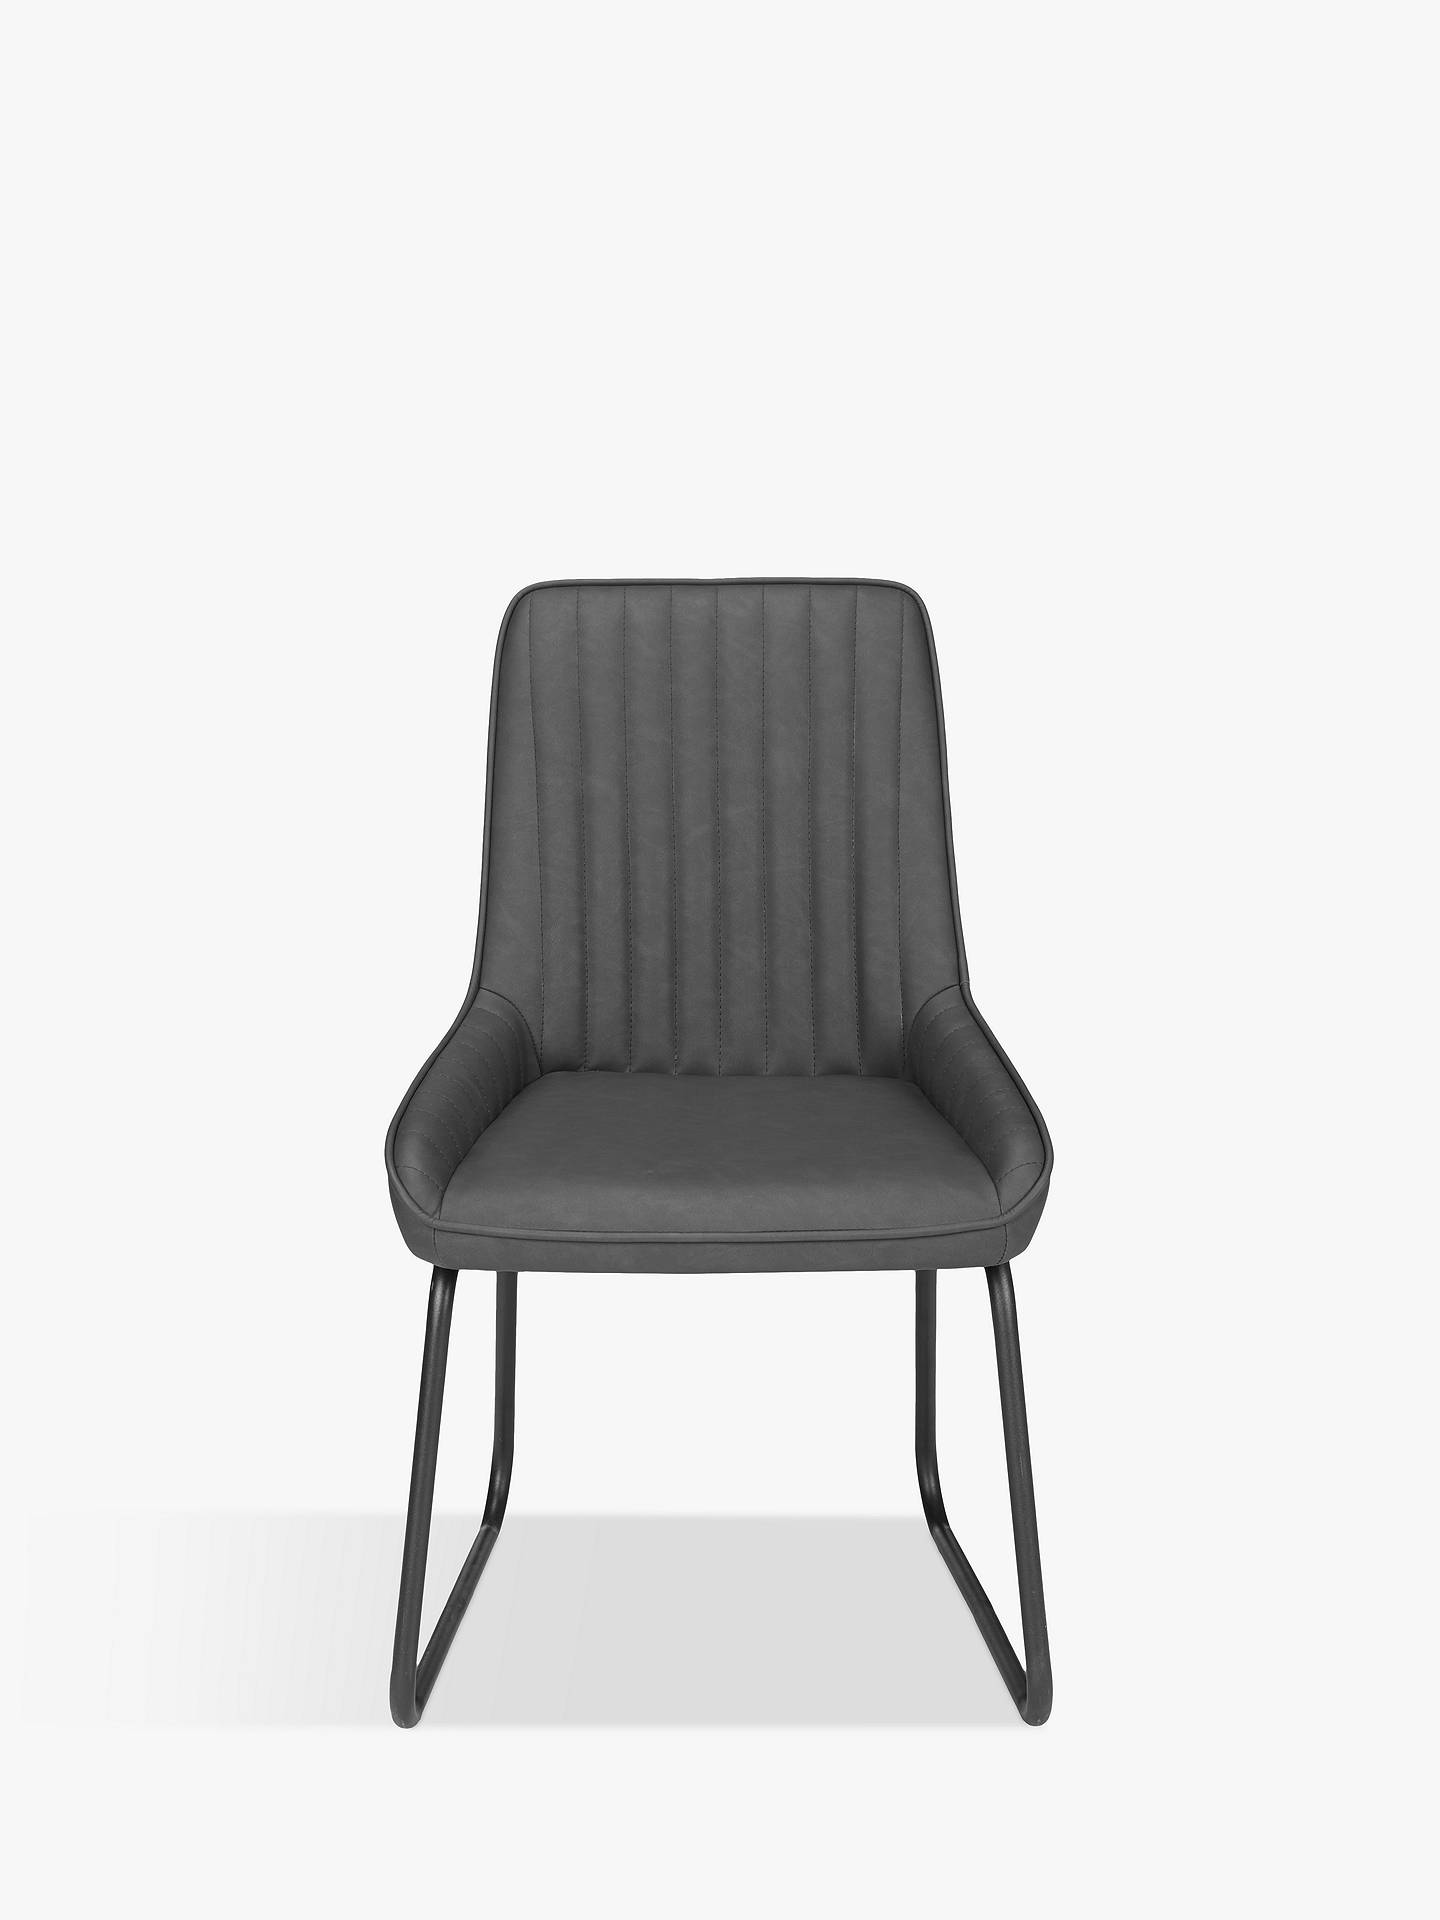 John Lewis & Partners Brooks Side Dining Chairs, Set of 8, Charcoal